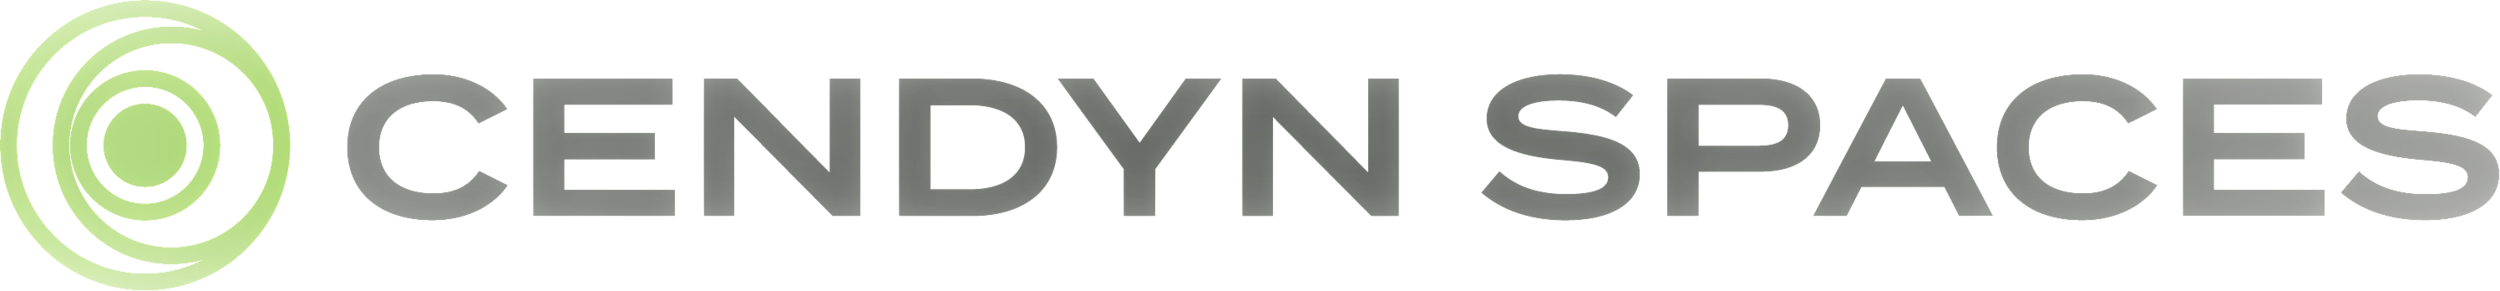 CendynSpaces_Logo_2017_GreenGray.png